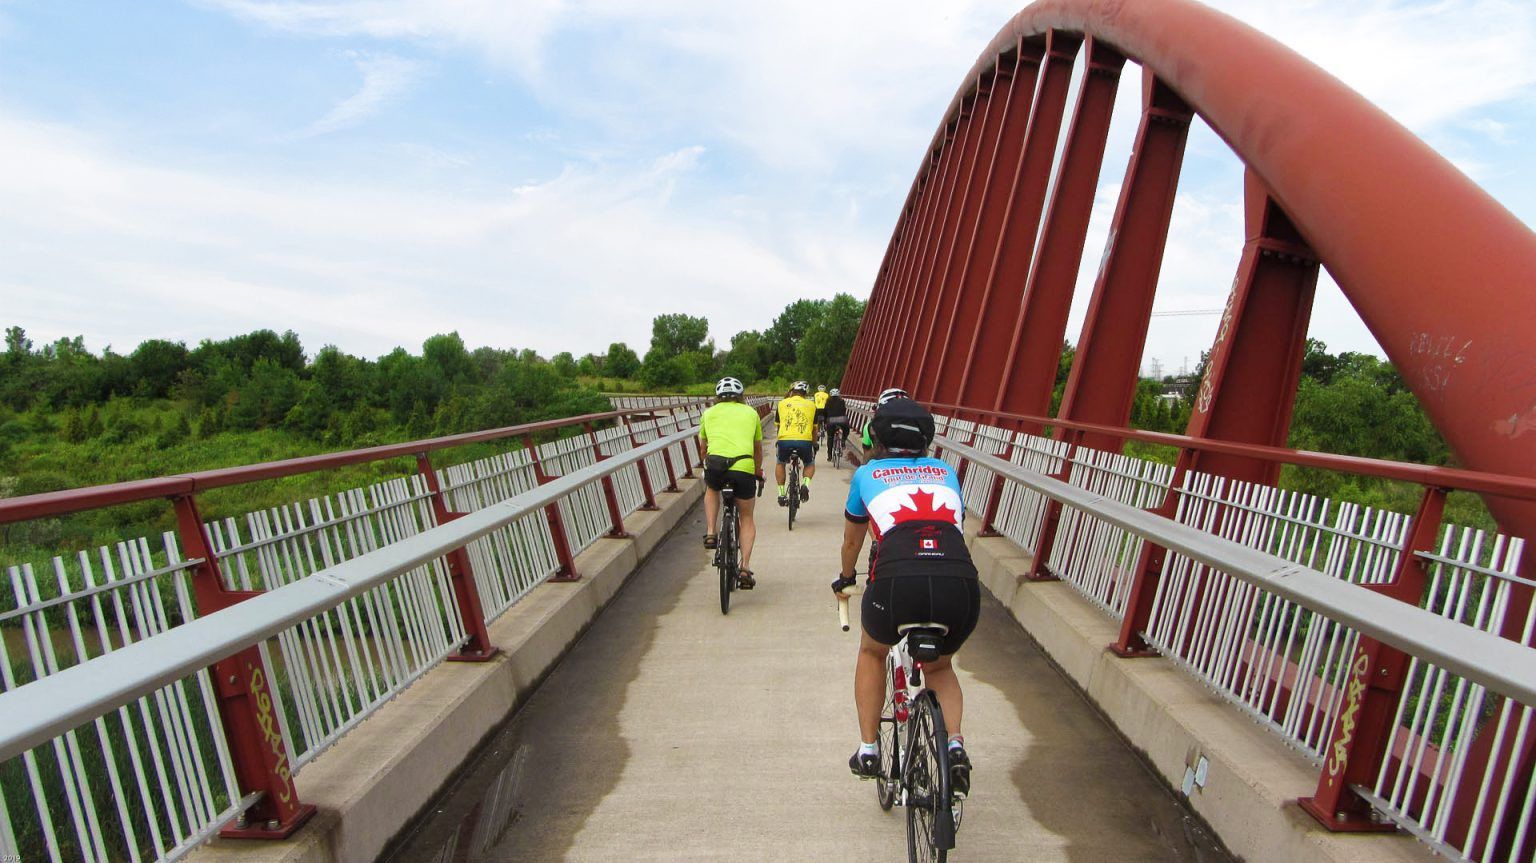 Hamilton-Harbour-riders-on-bridge